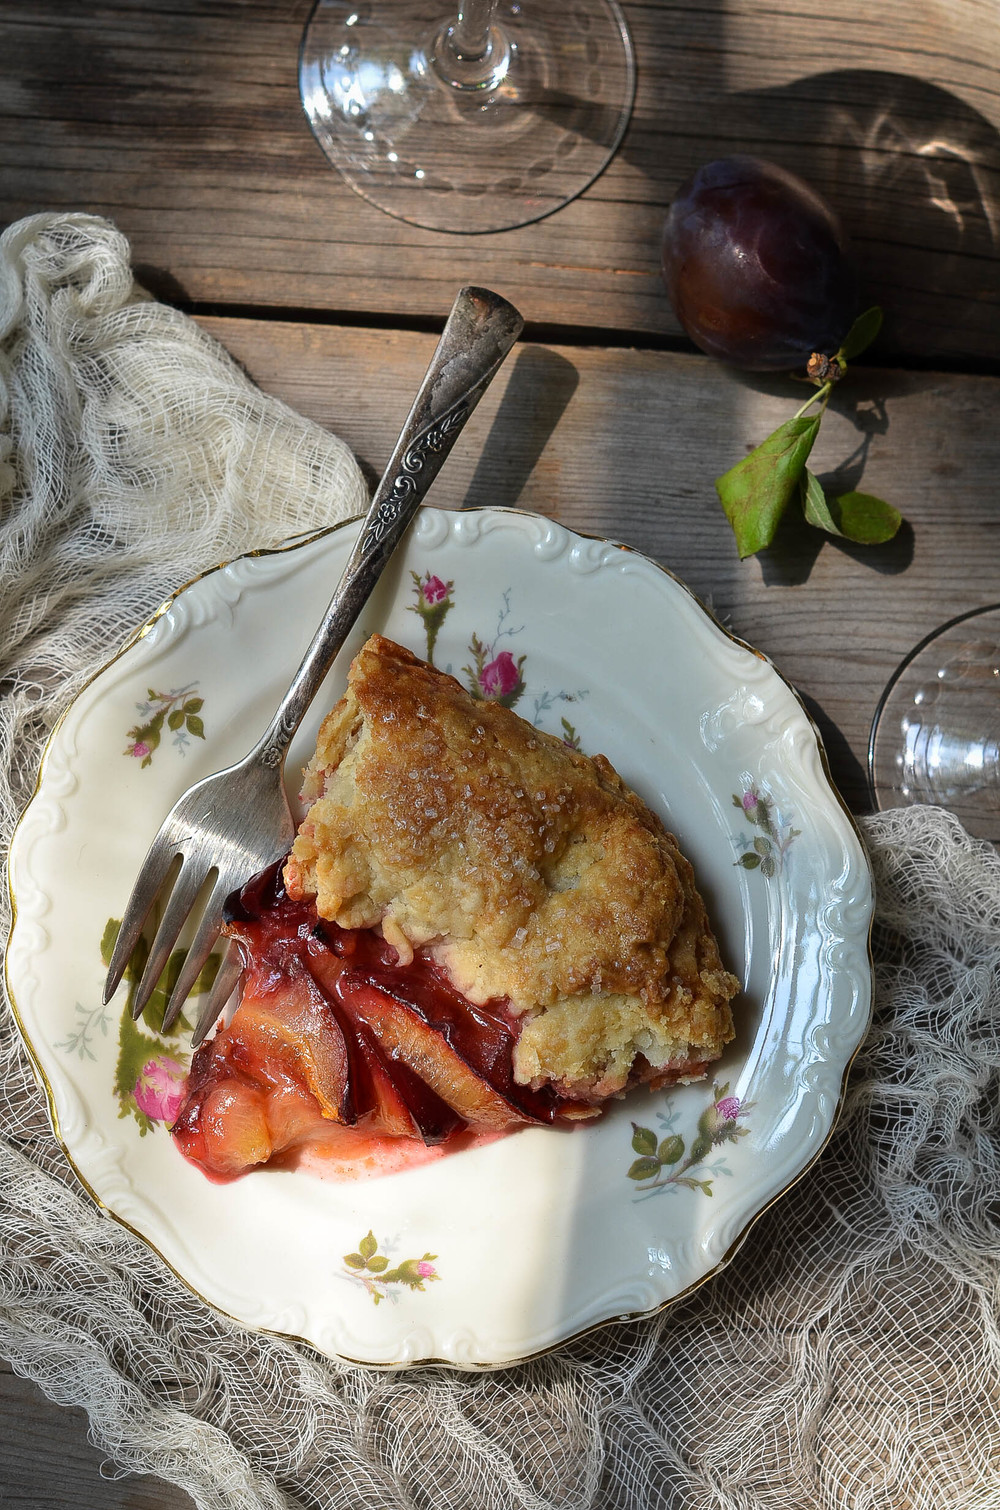 ROSE & IVY JOURNAL PLUM & ROSE TART